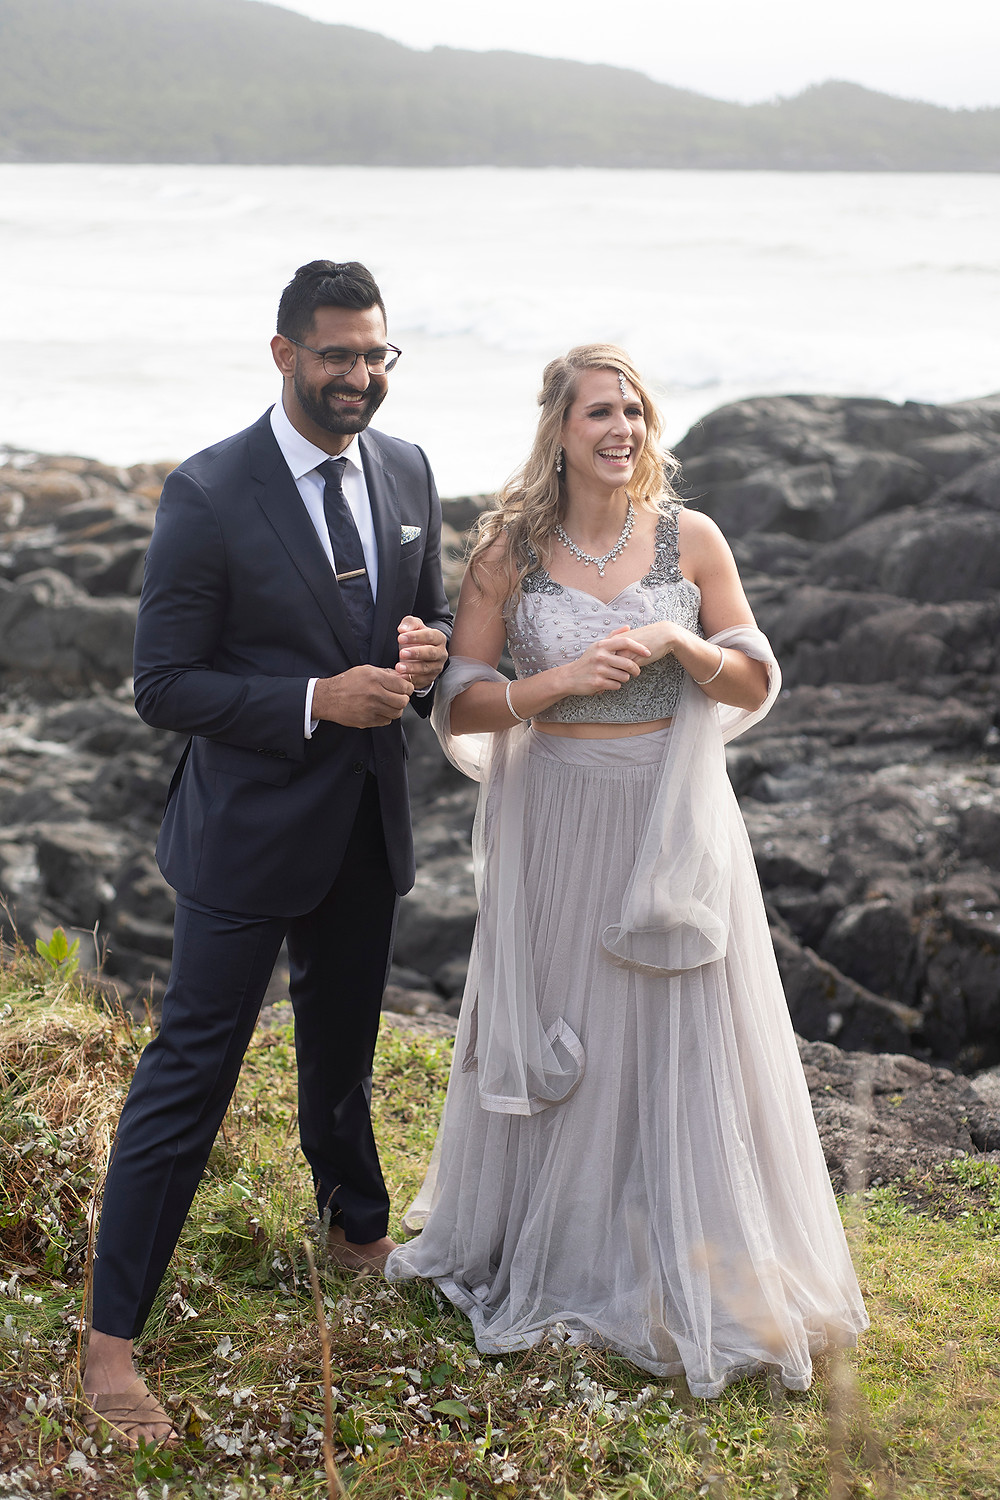 Bride and groom smile on pettinger point at their small wedding in Tofino. Photographed by Tofino wedding photographer Kaitlyn Shea.